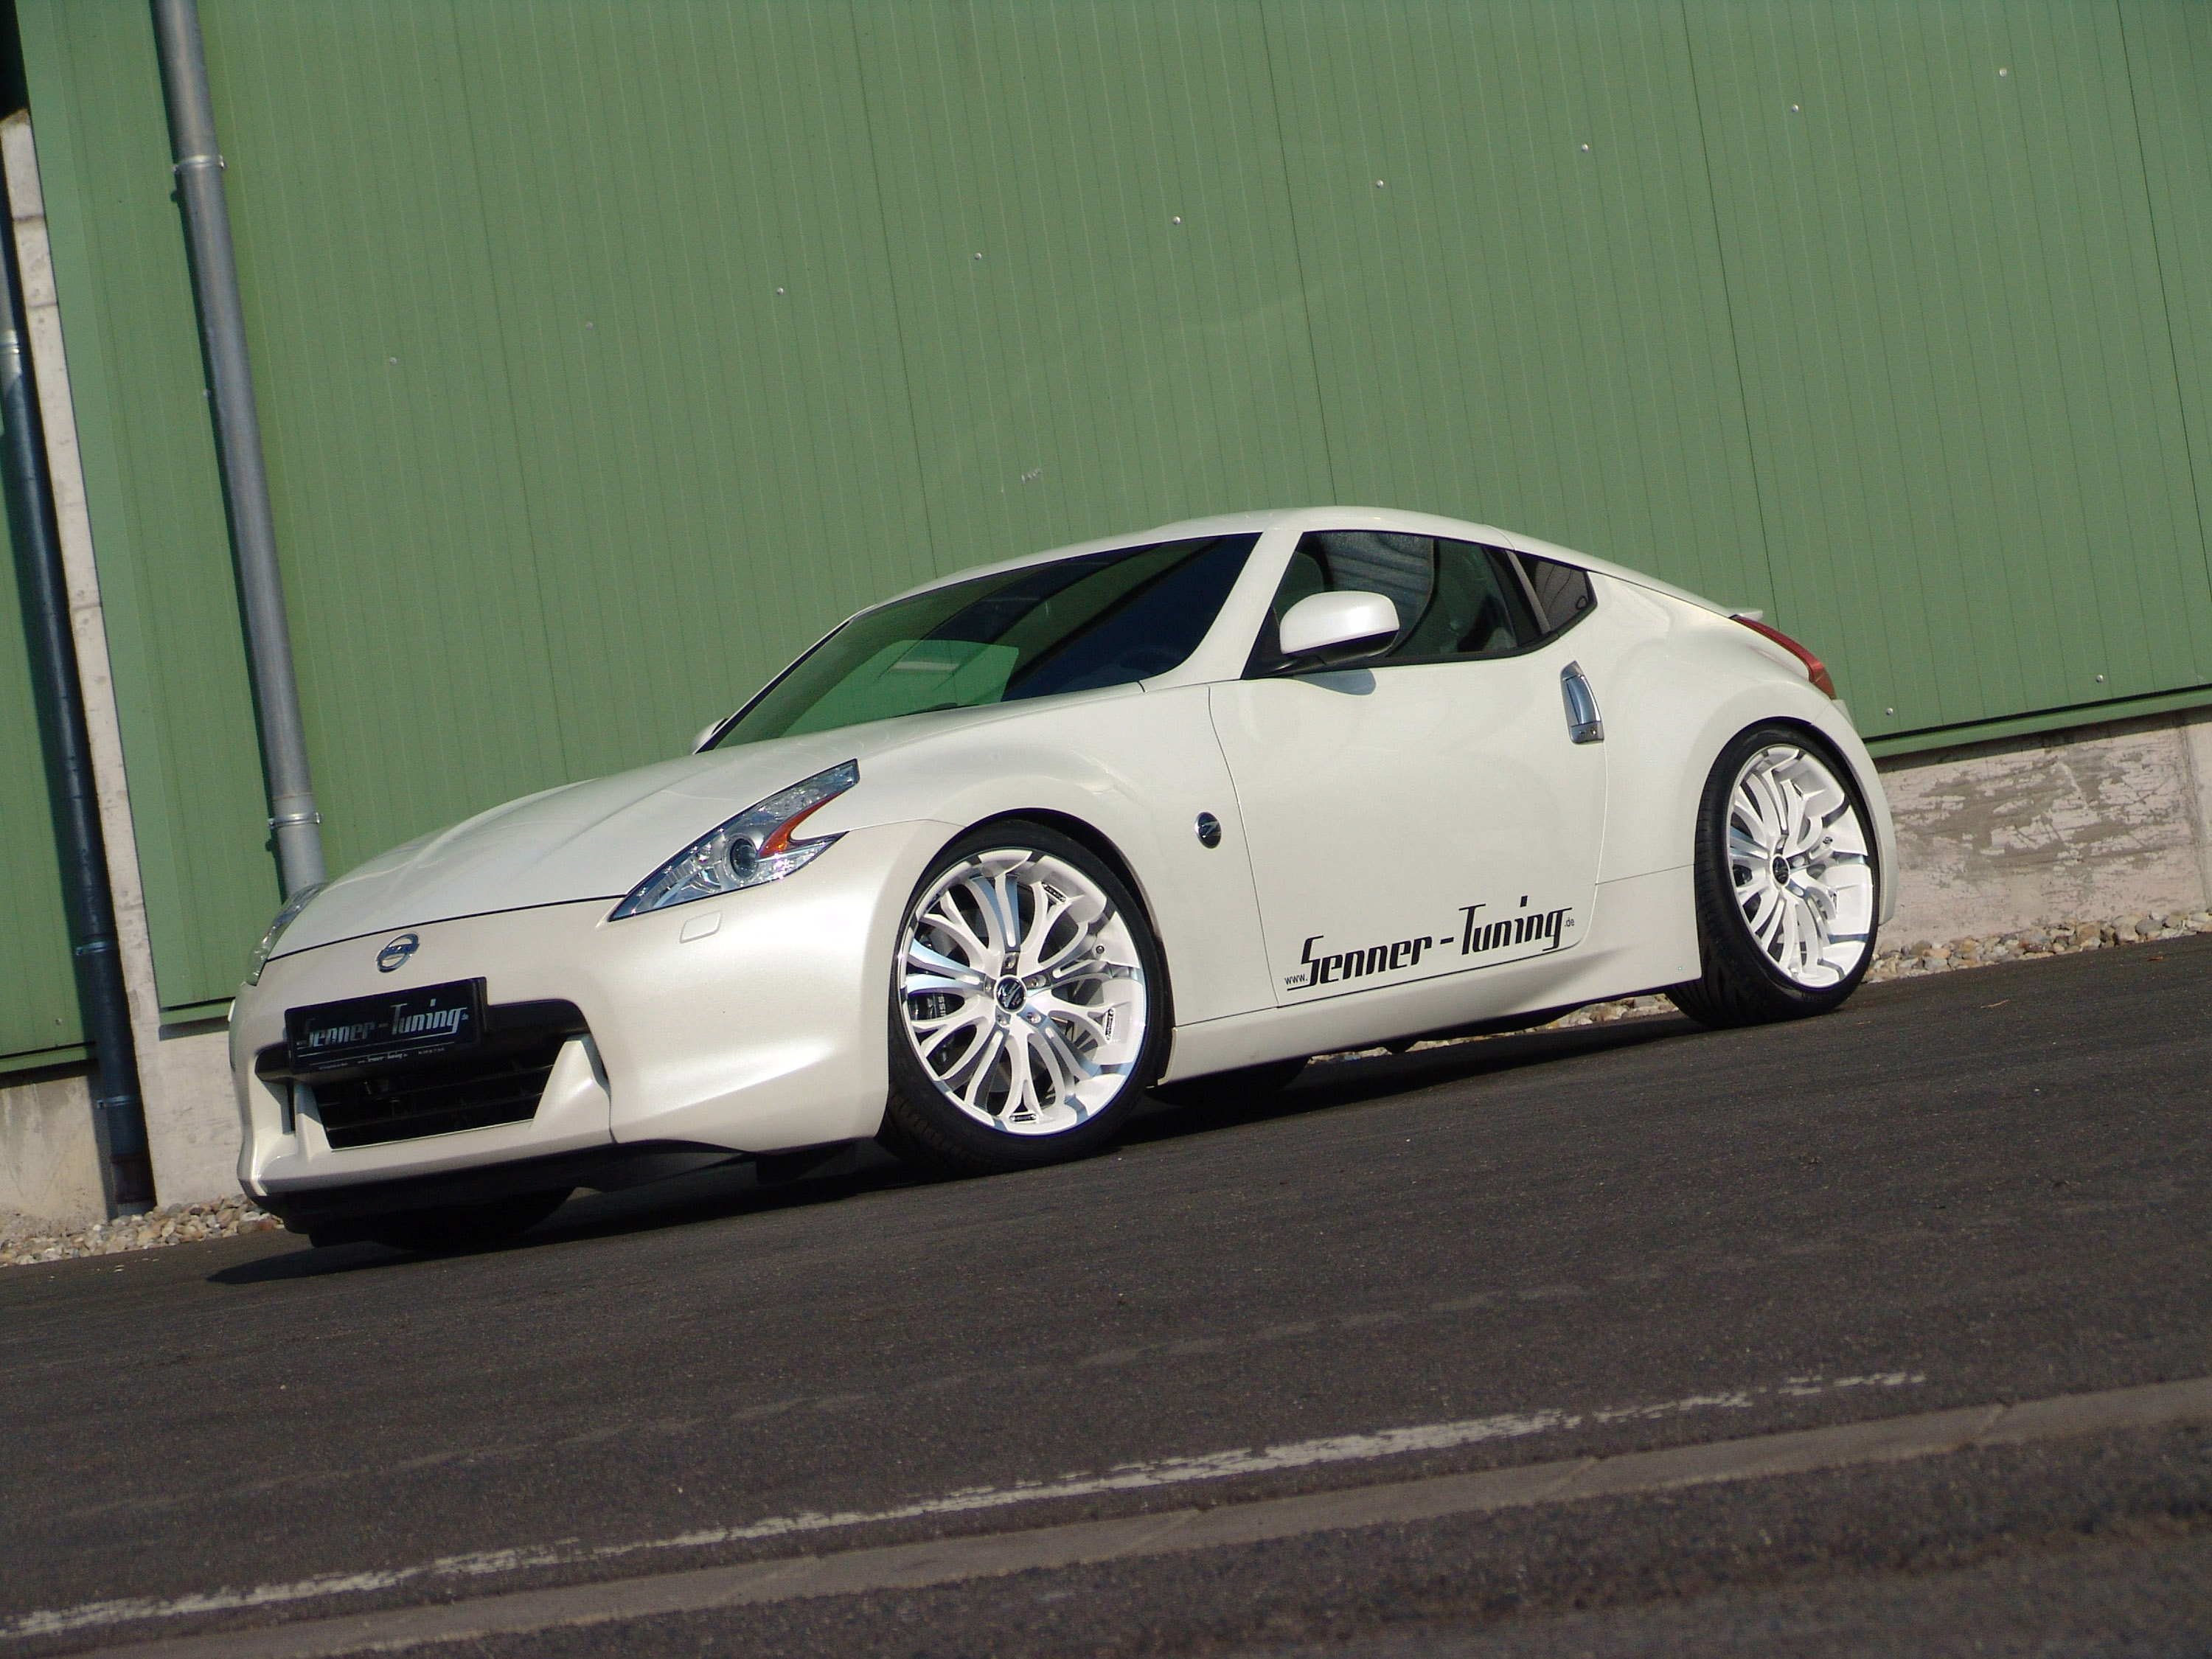 View Of Nissan 370z Roadster Photos Video Features And Tuning Of Vehicles Gr8autophoto Com